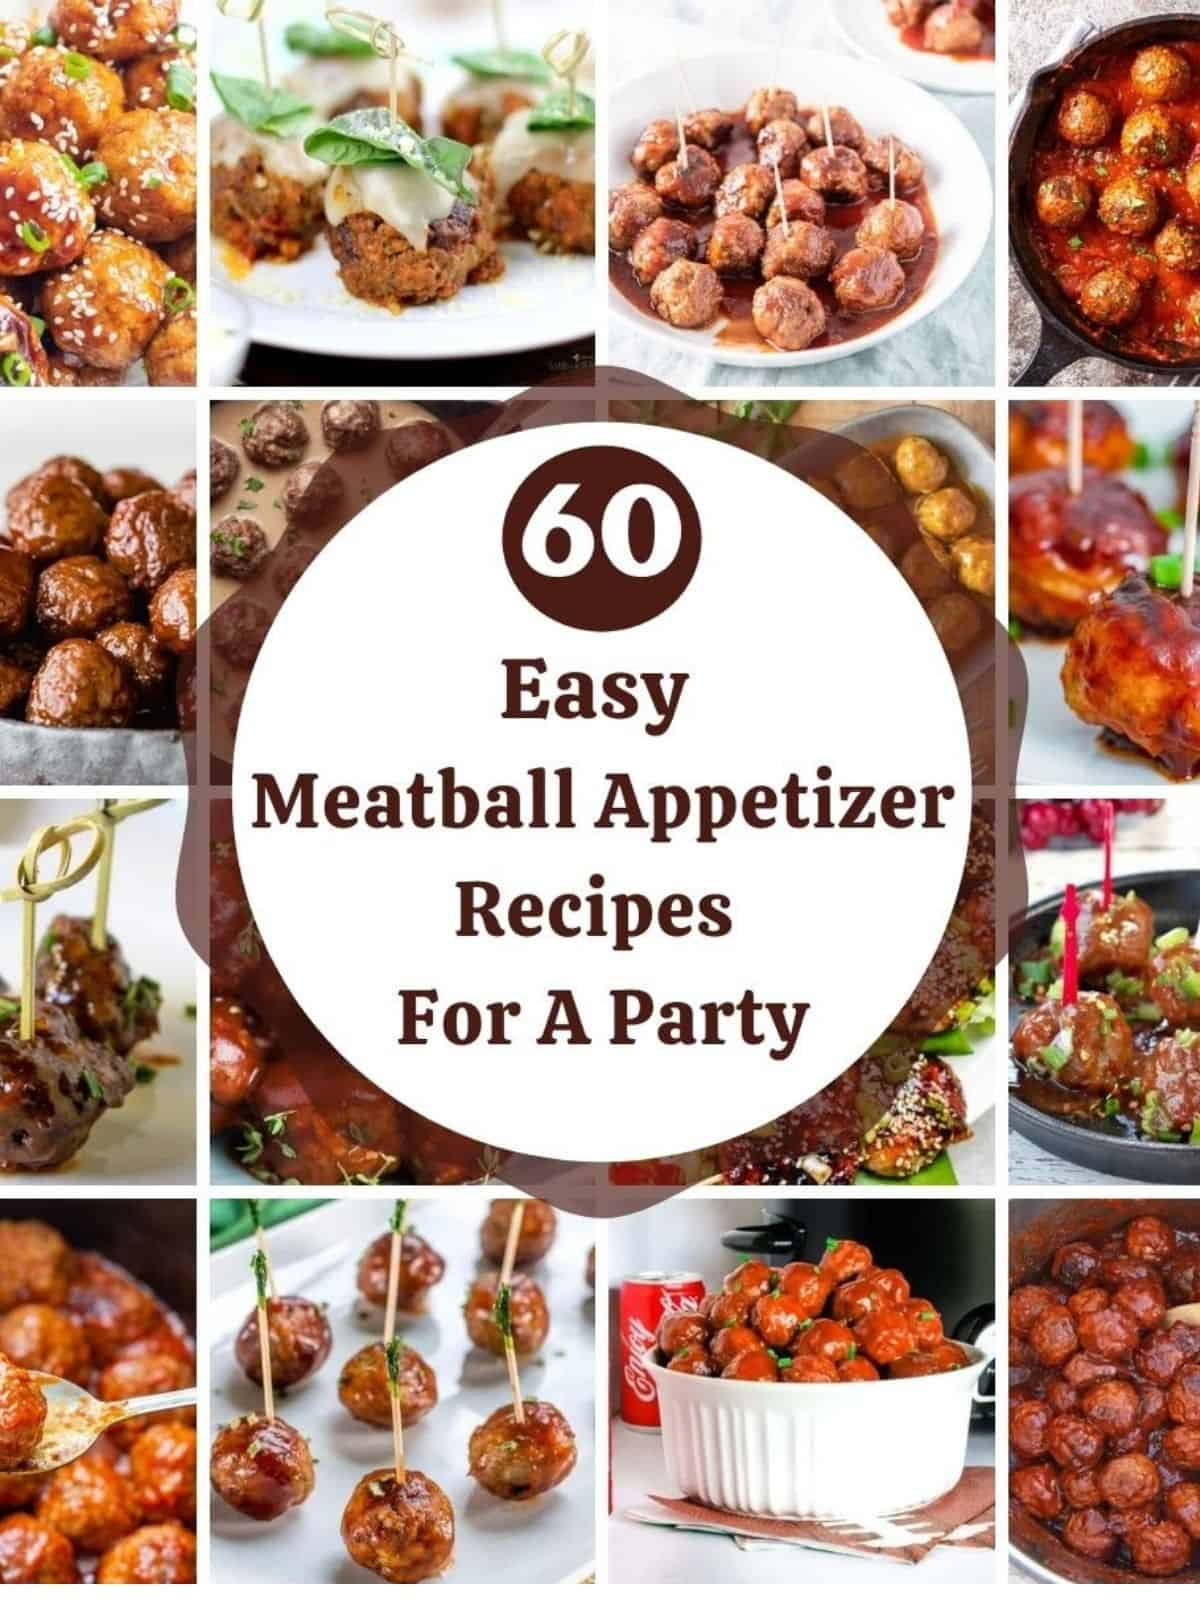 60 Easy Meatball Appetizer Recipes For A Party with pictures of different recipes